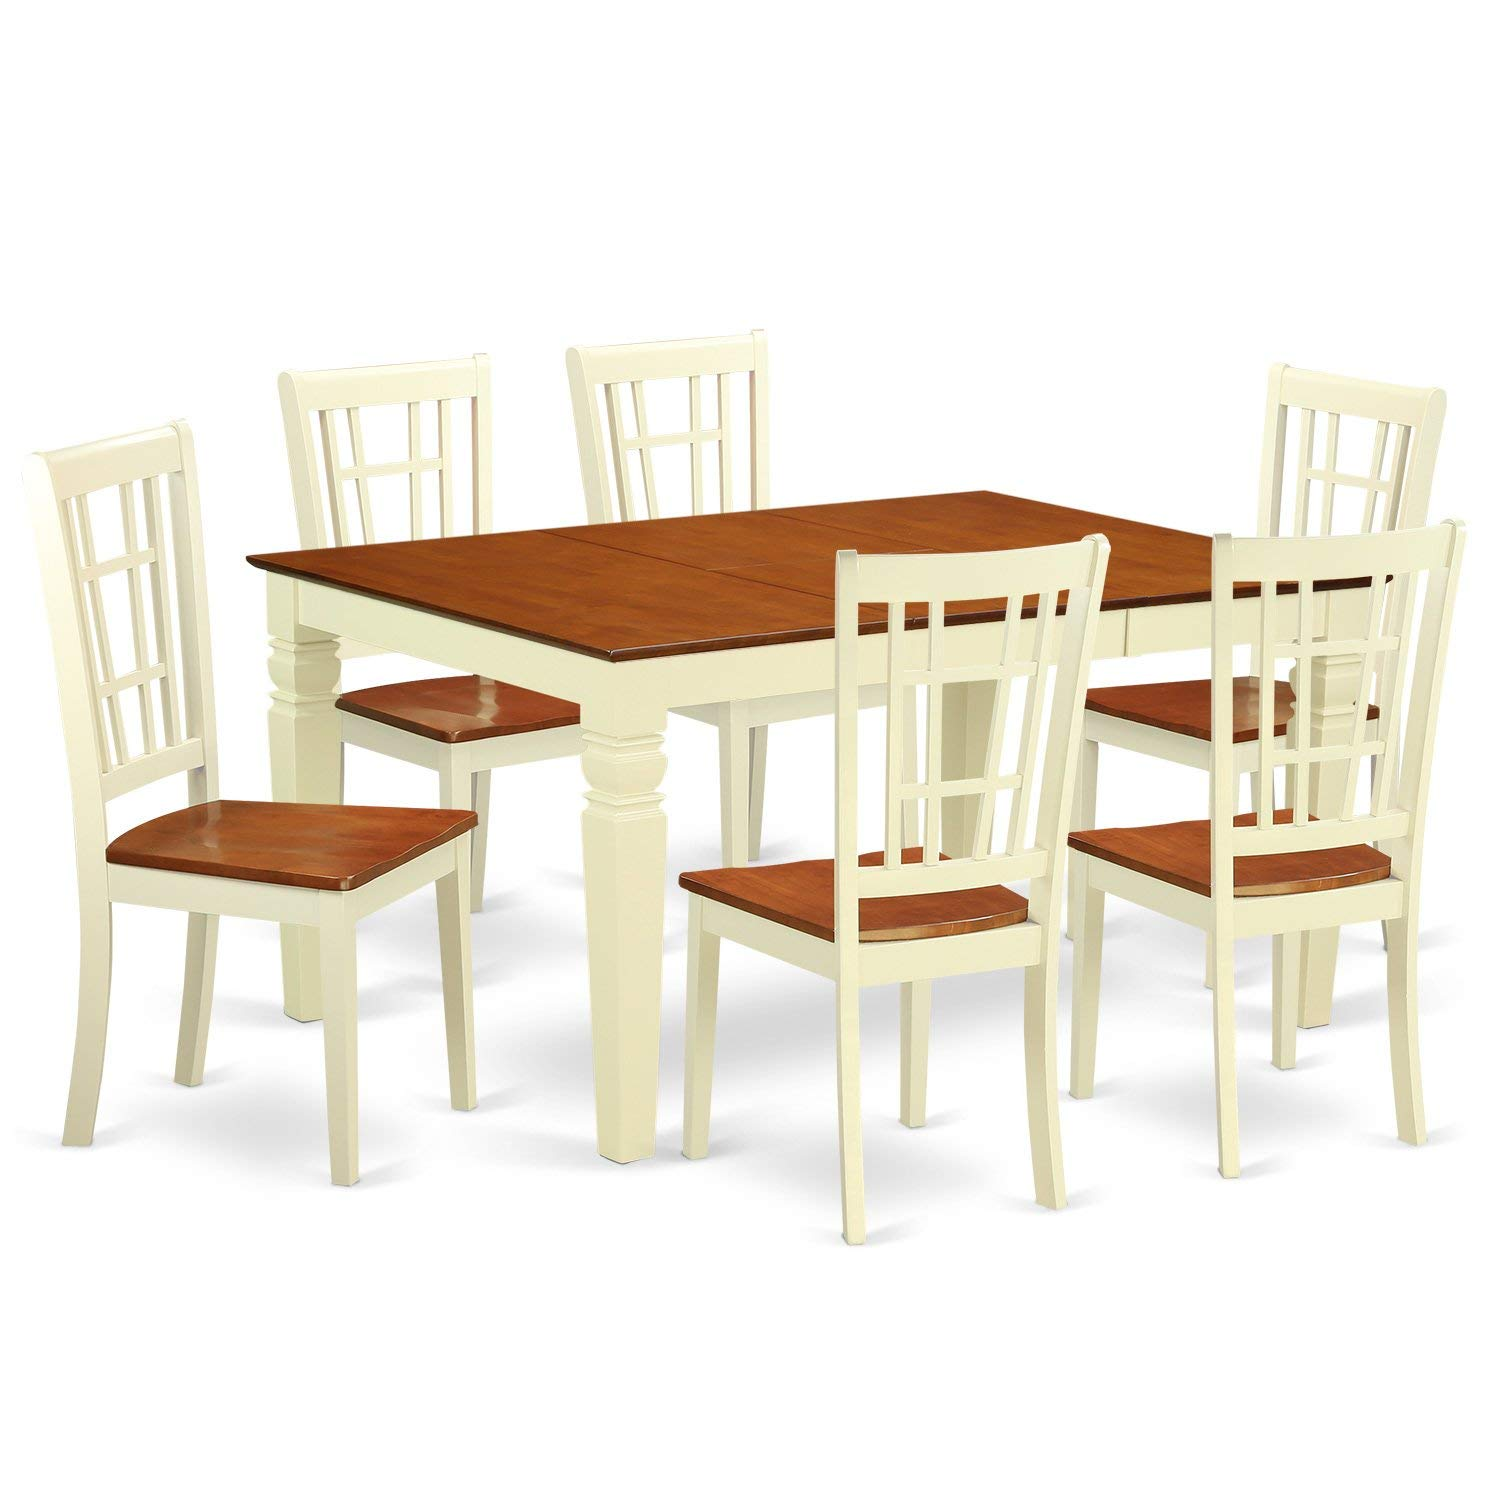 East West Furniture Weston WENI7-BMK-W 7 Pc Set with a Dining Table and 6 Wood Kitchen Chairs, Buttermilk and Cherry